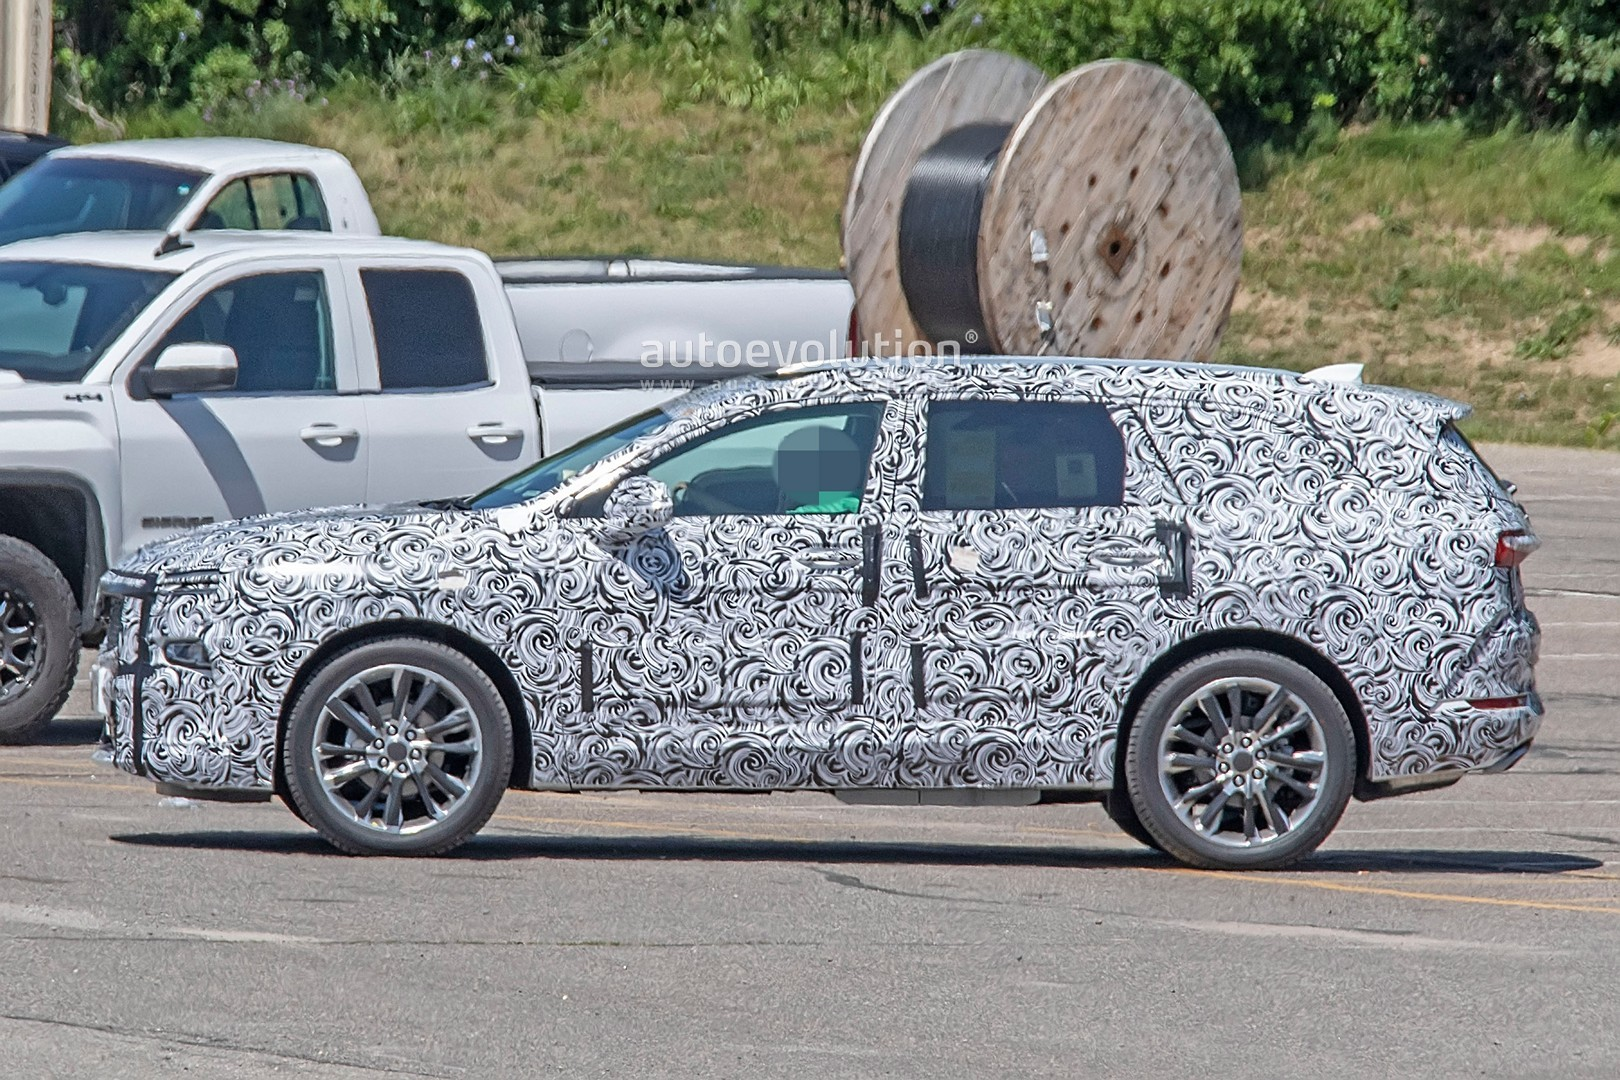 2020 - [Buick] Enspire Buick-spotted-testing-baby-enclave-spied-looks-like-enspire_2